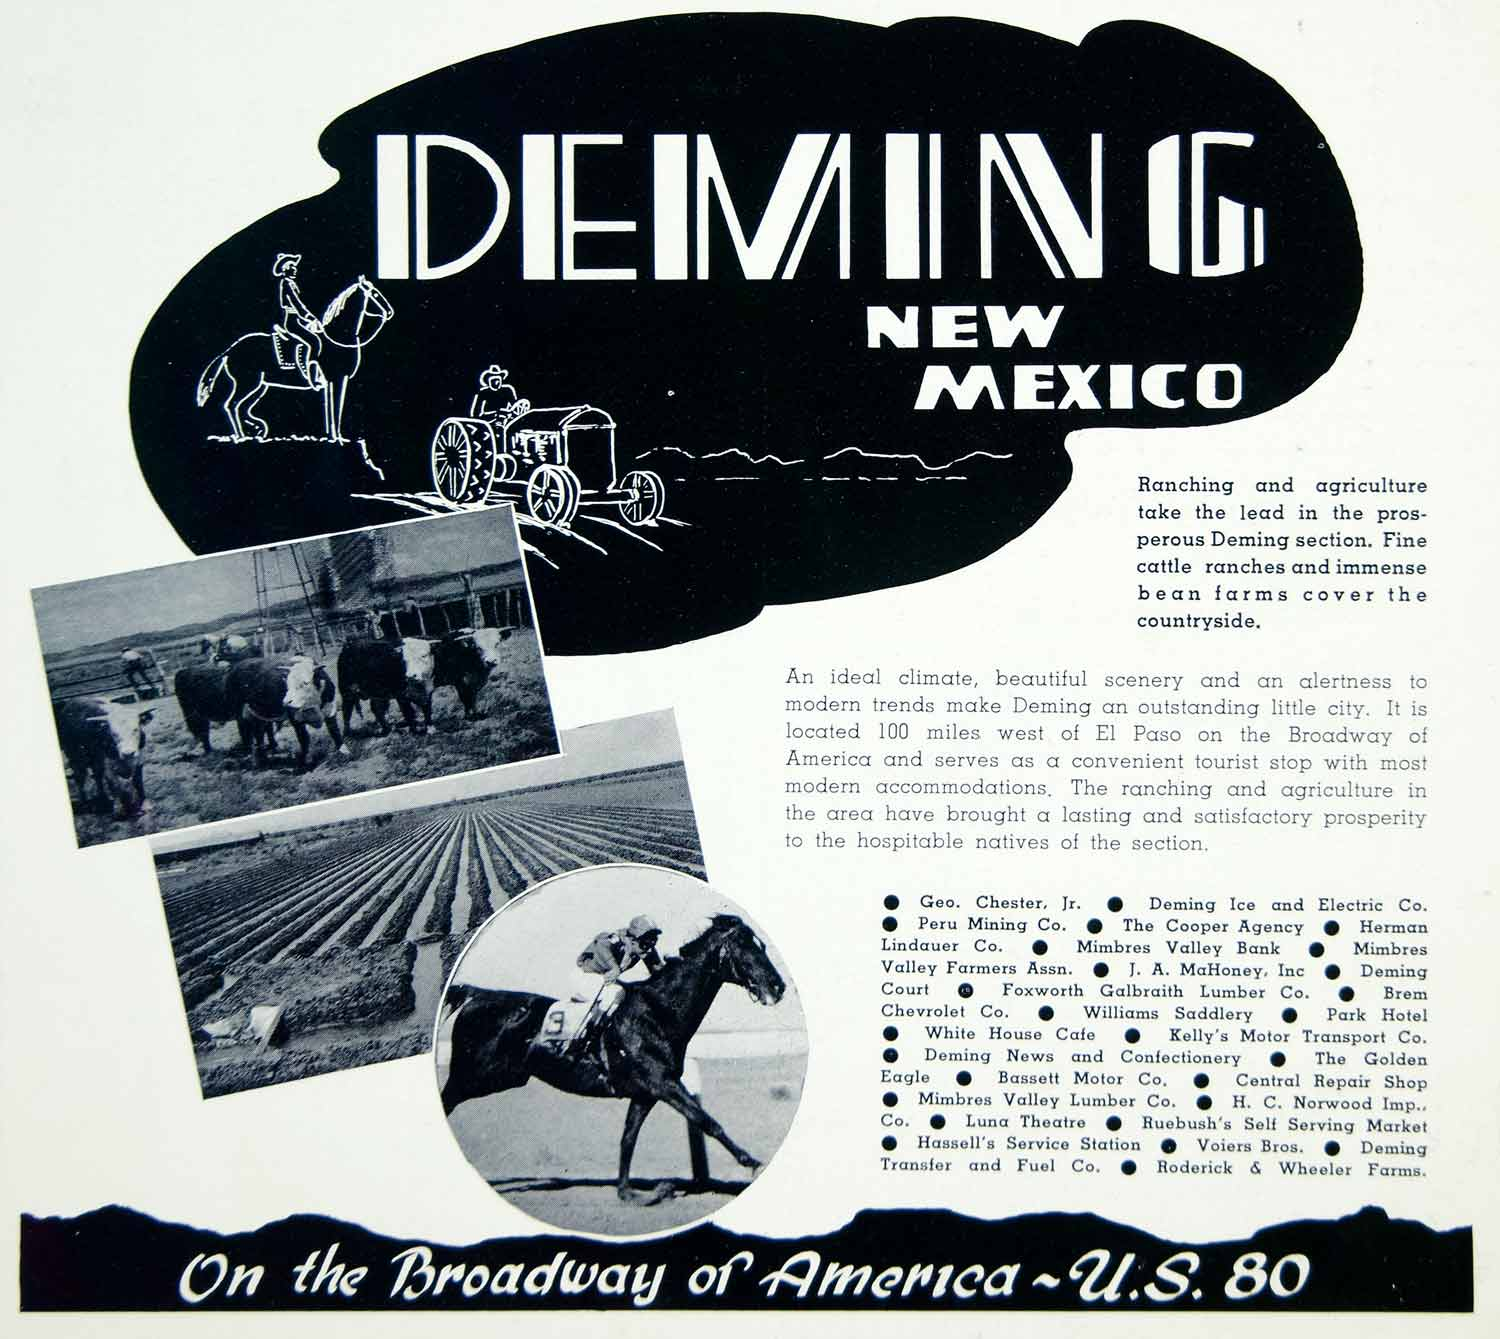 1941 Ad Deming Bean Farms Cattle Texas Ruebush Hassell Touirsm U.S. 80 YAH1